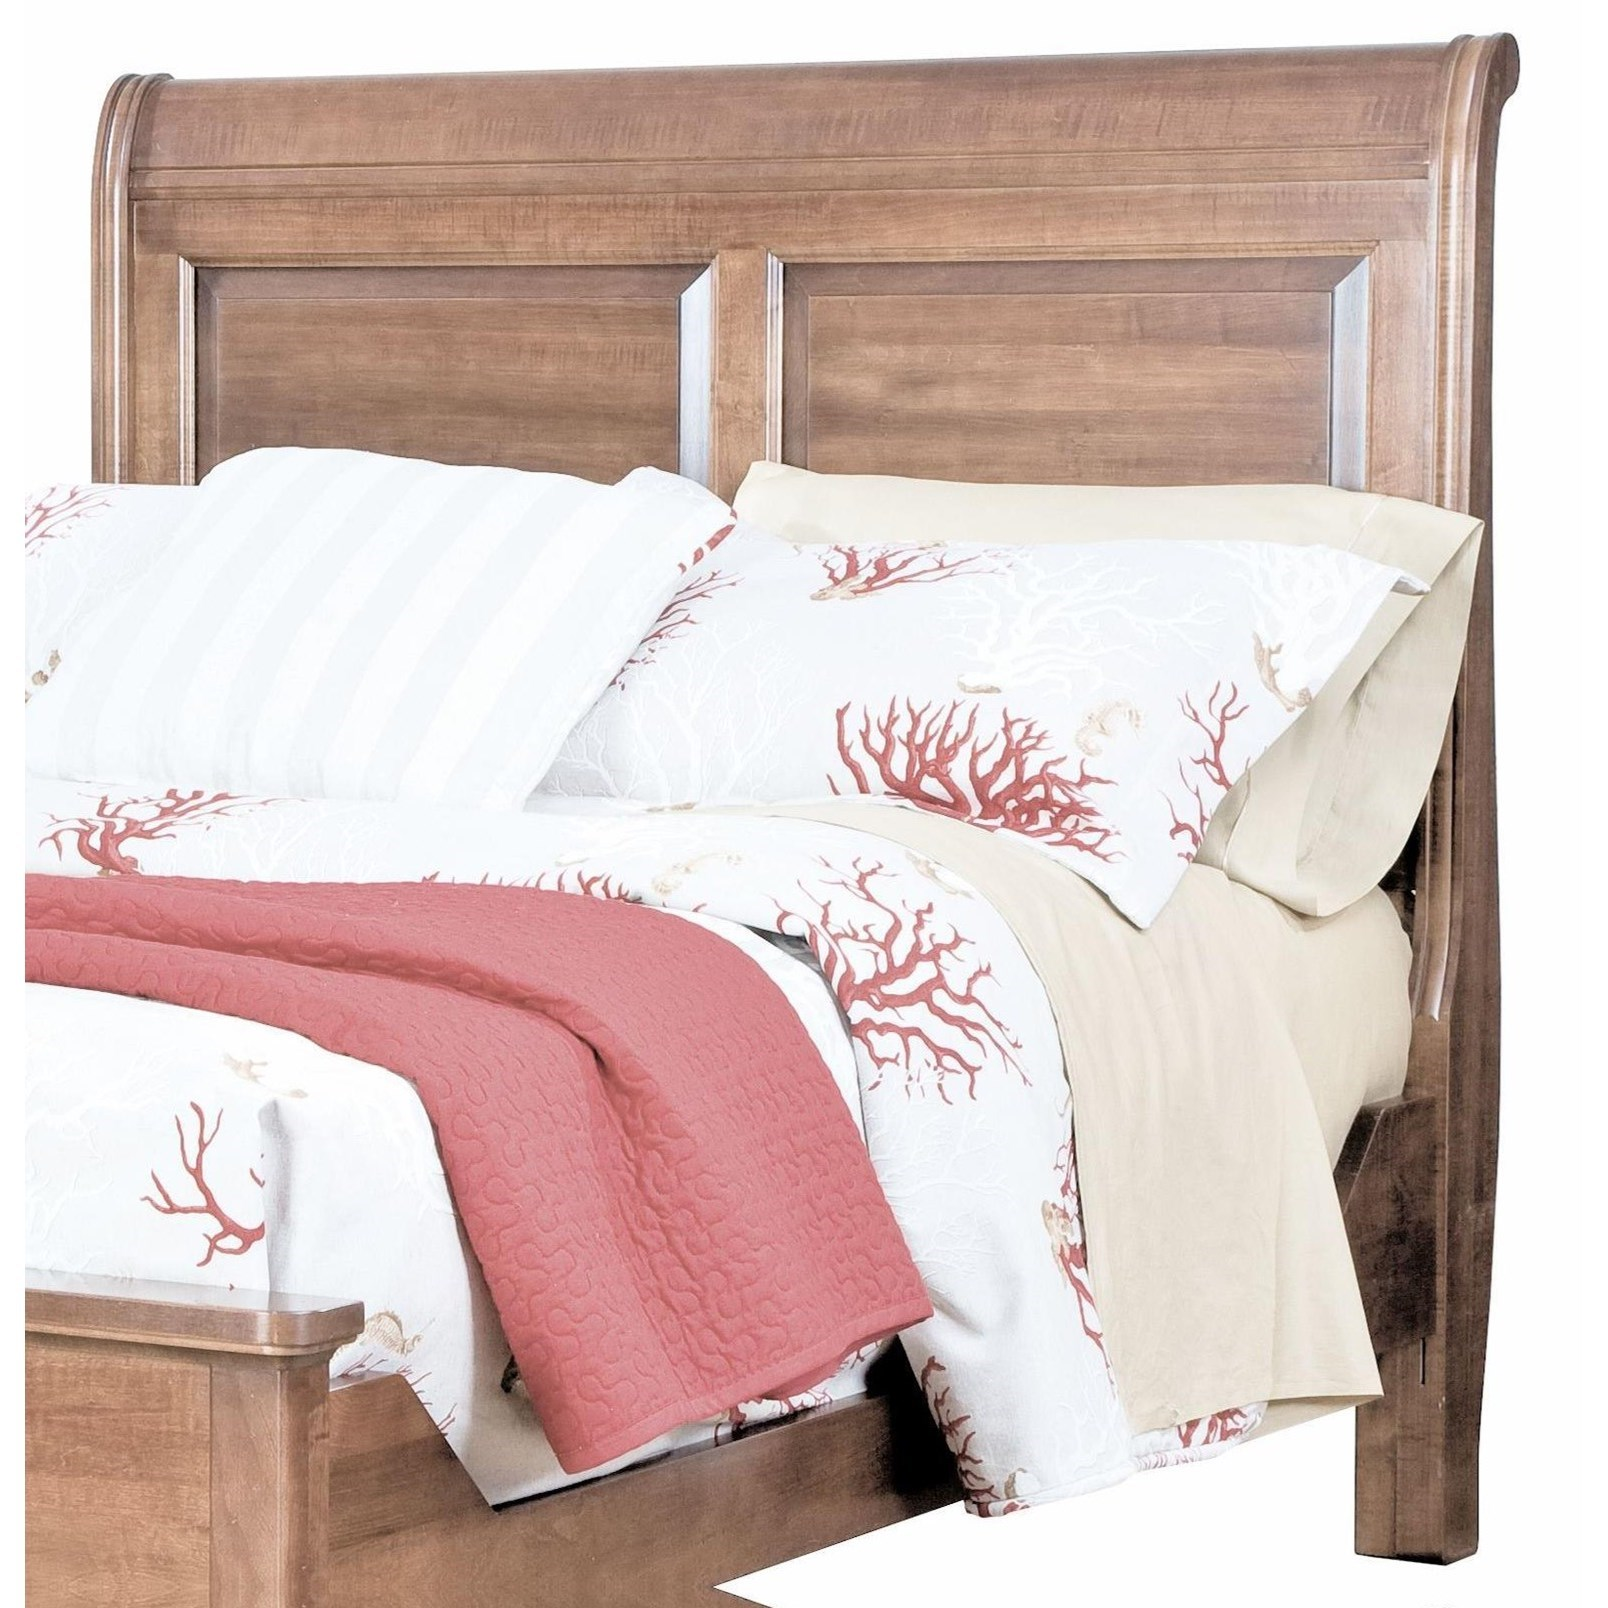 Beds Queen Sleigh Headboard by perfectbalance by Durham Furniture at Stoney Creek Furniture